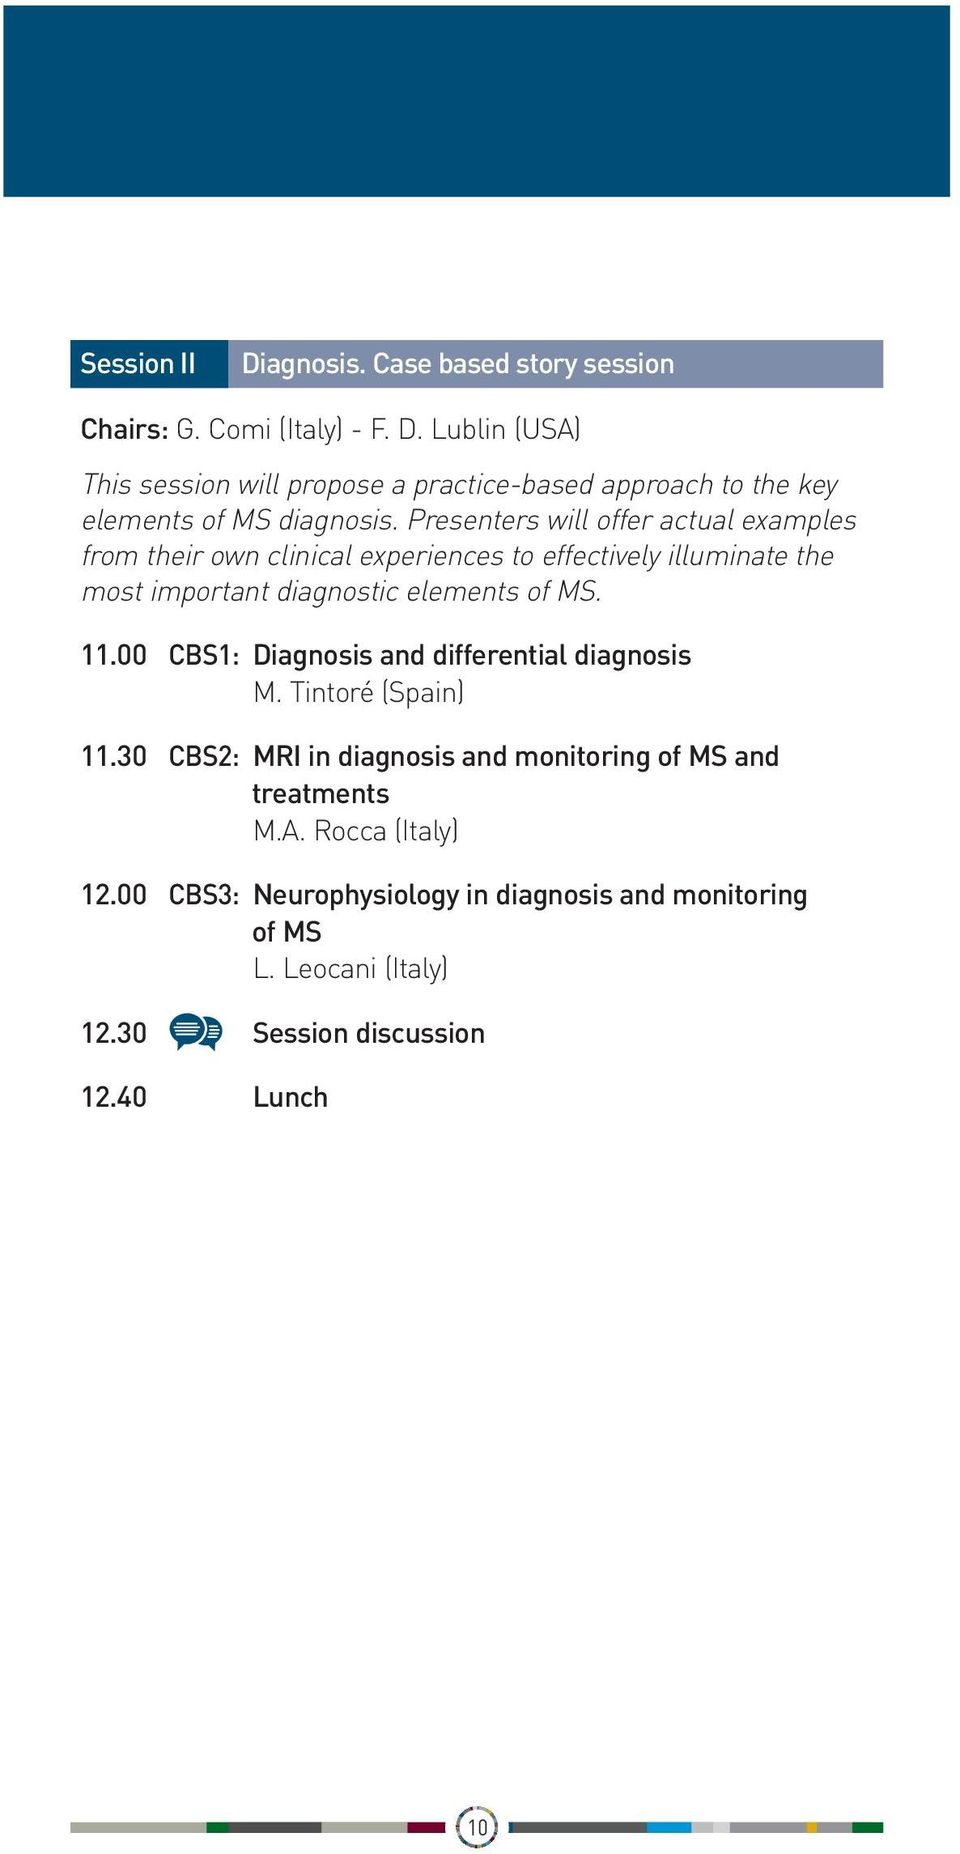 00 CBS1: Diagnosis and differential diagnosis M. Tintoré (Spain) 11.30 CBS2: MRI in diagnosis and monitoring of MS and treatments M.A.